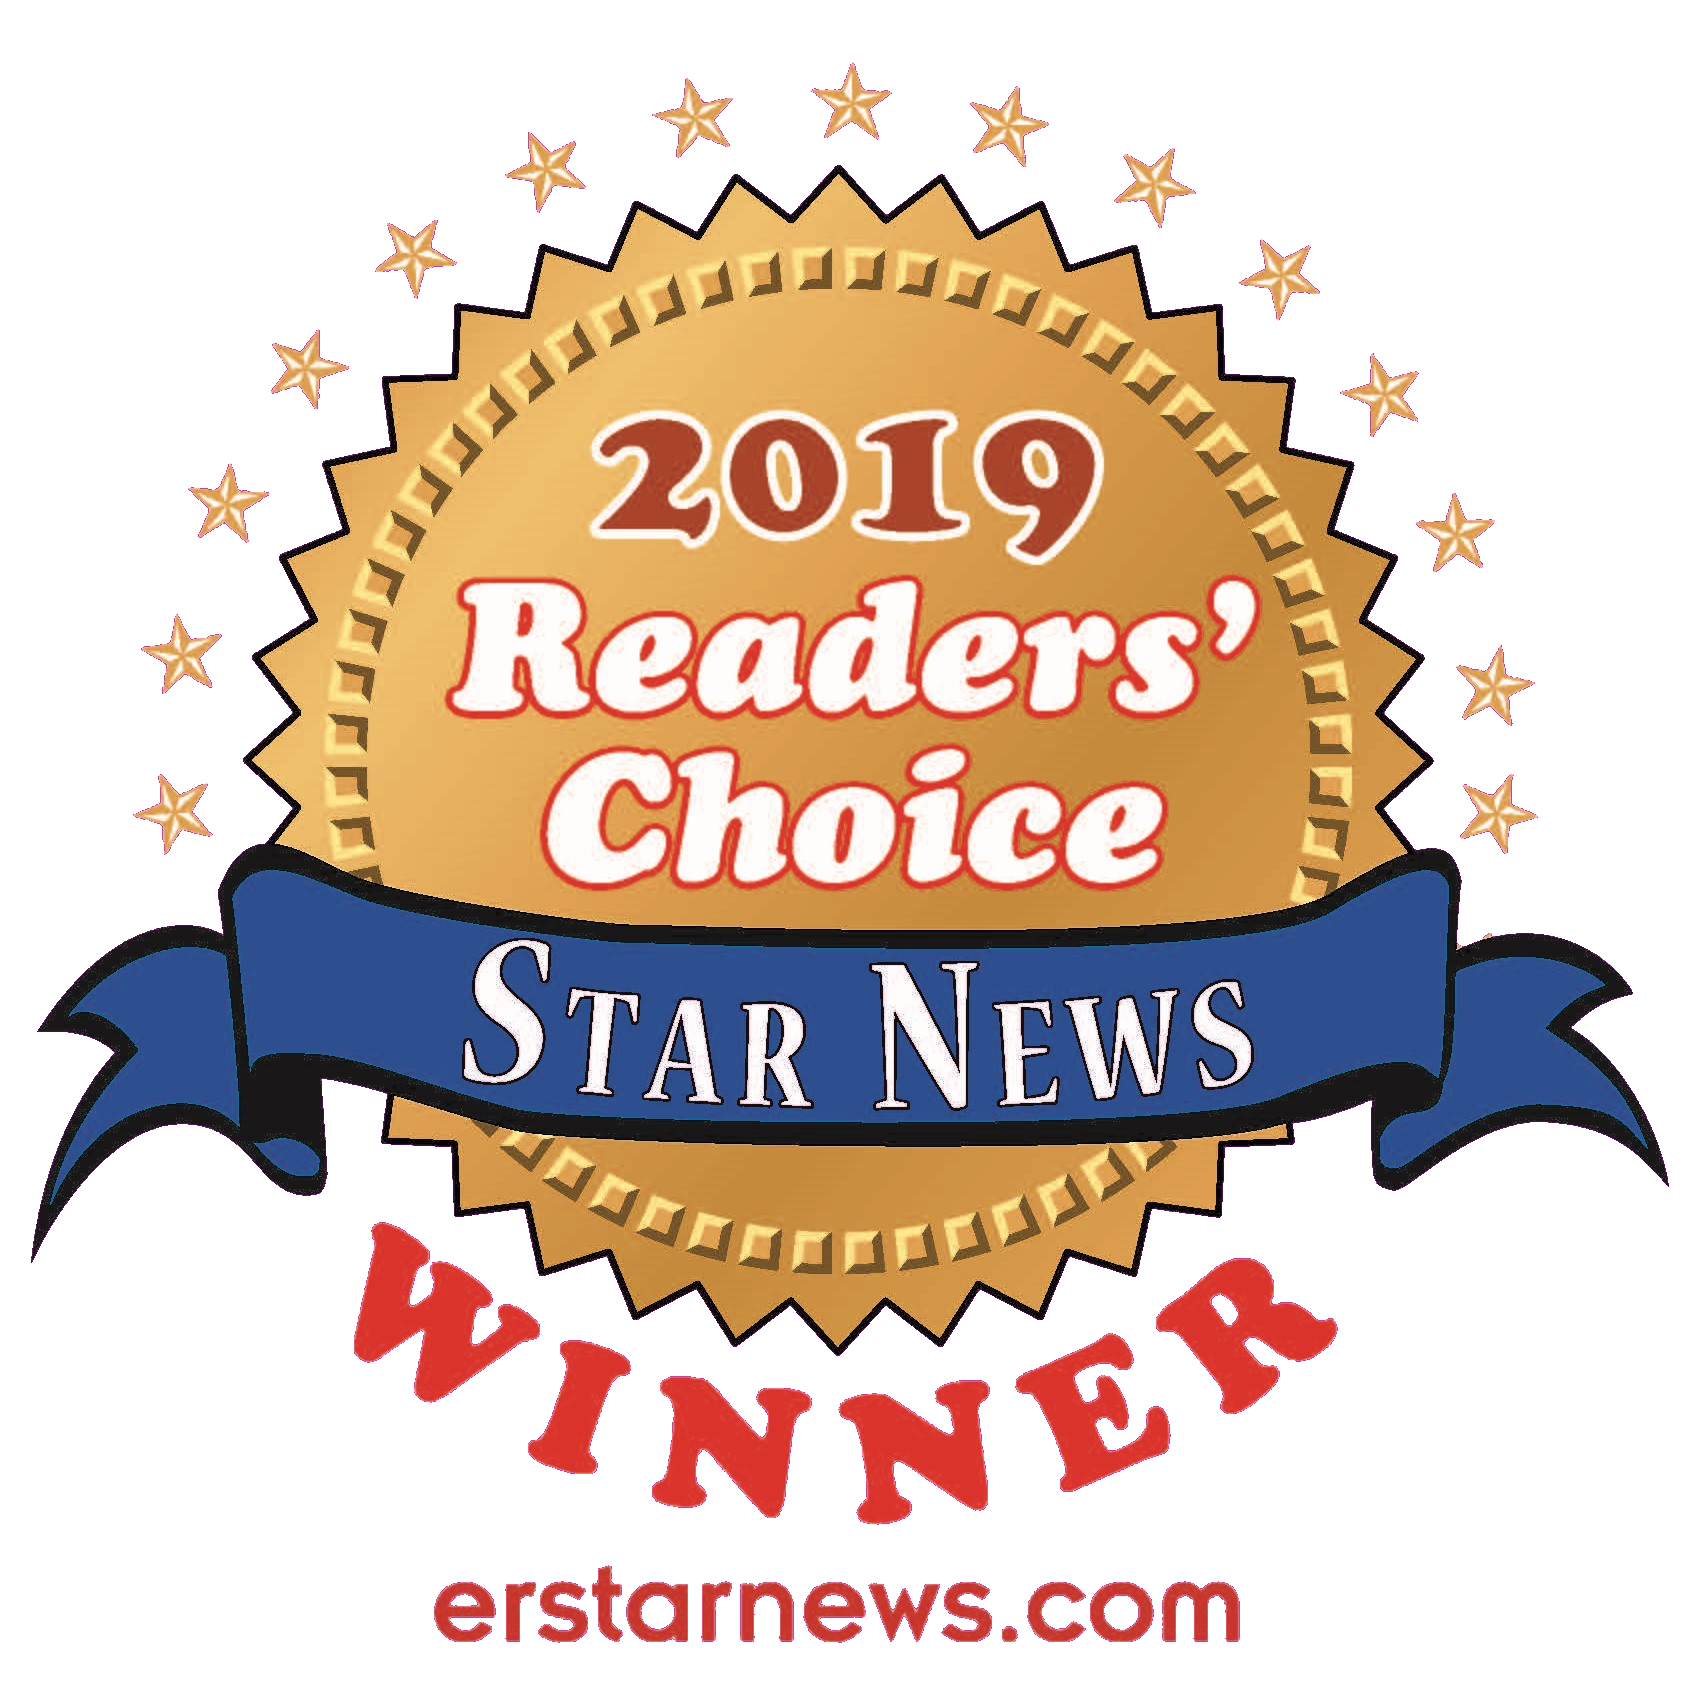 2019 Star News Elk River MN Readers' Choice - Best Chiropractor